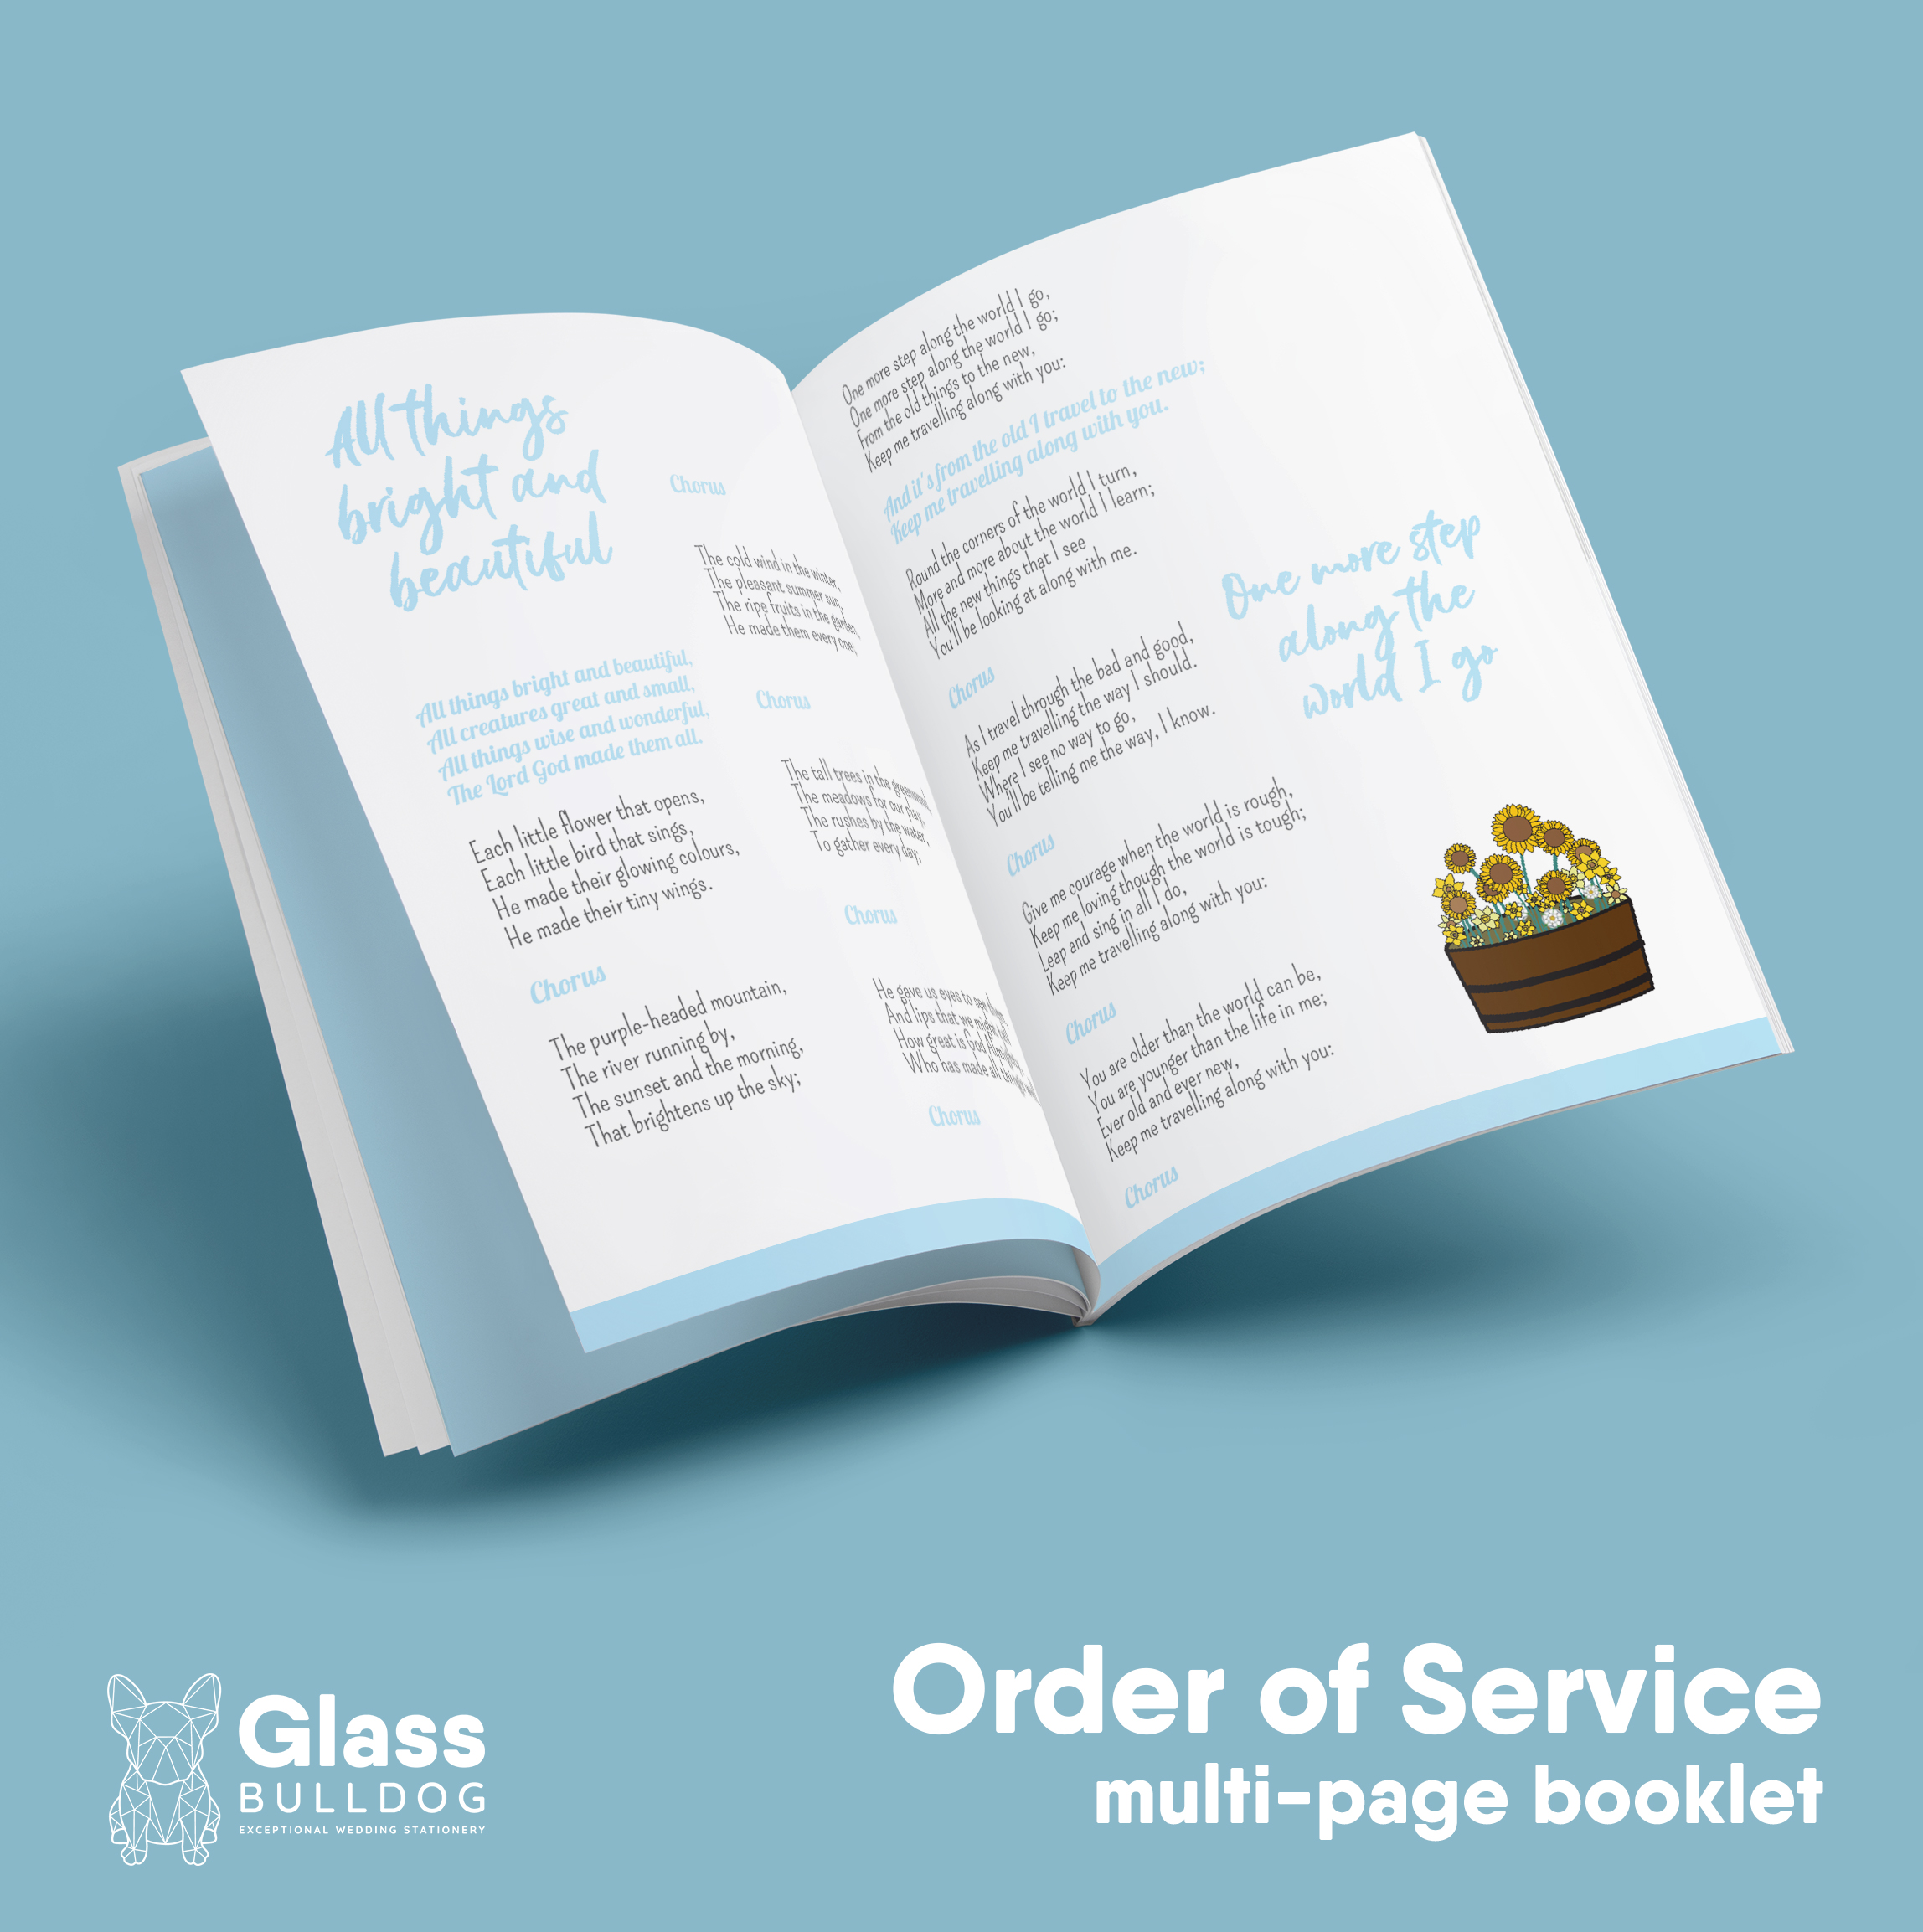 Order of Service booklet